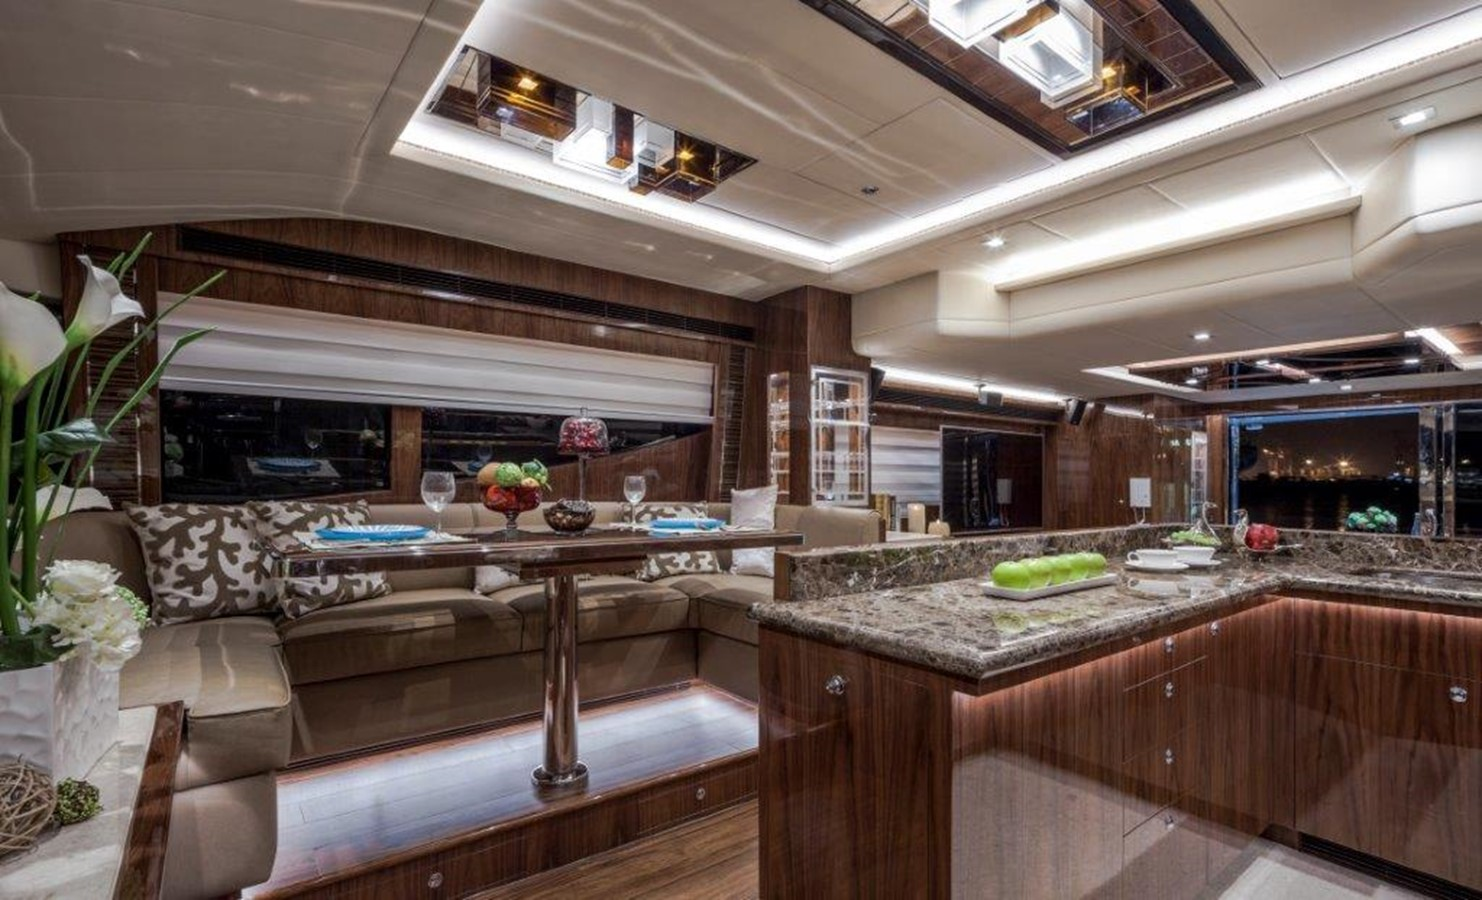 Galley - Dinette 2021 HORIZON E62 Motor Yacht 2205326